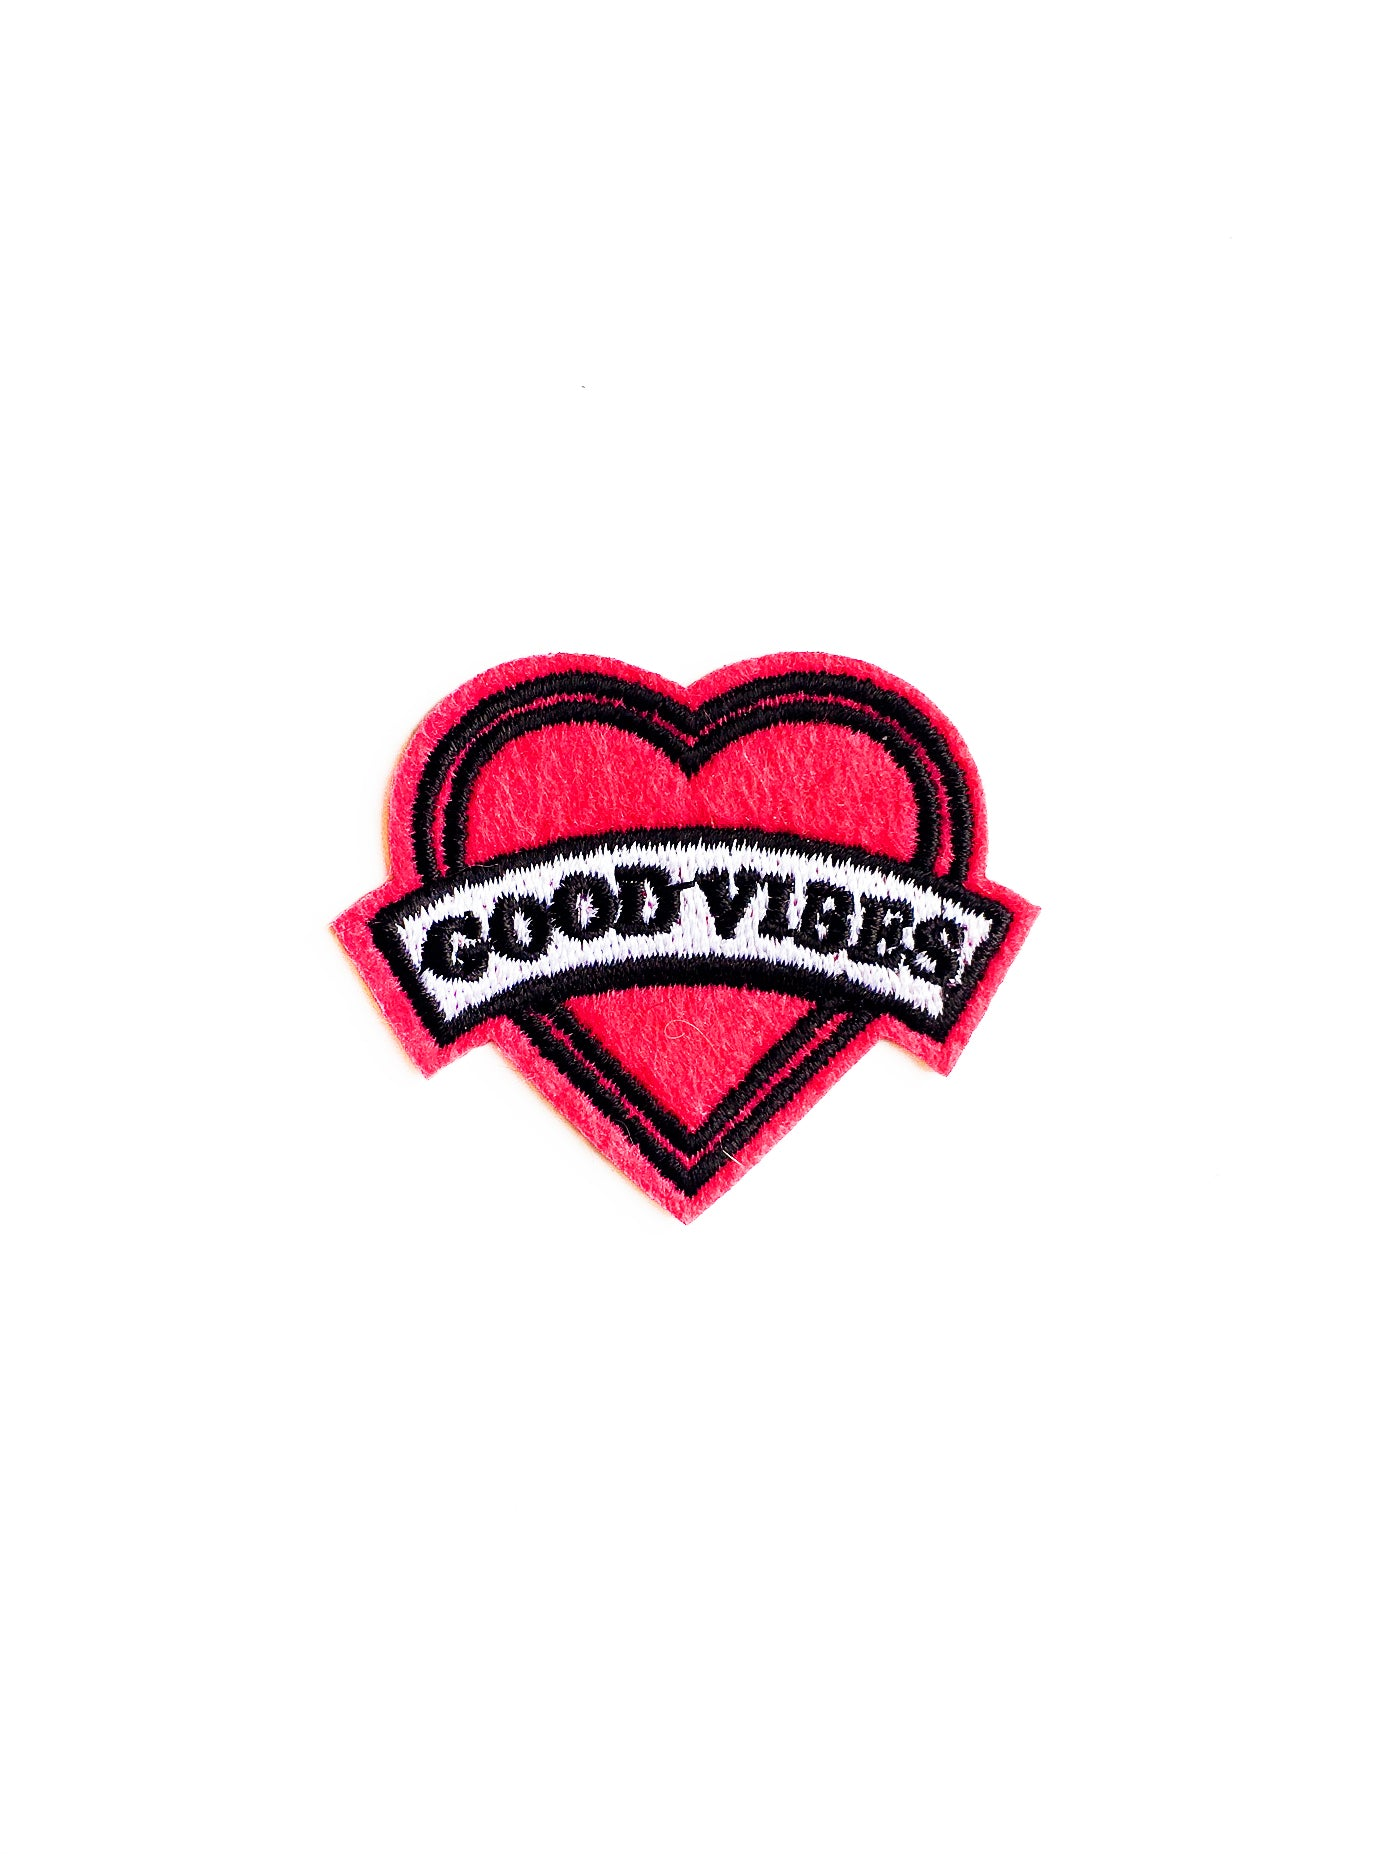 Good Vibes Heart Iron on Patch